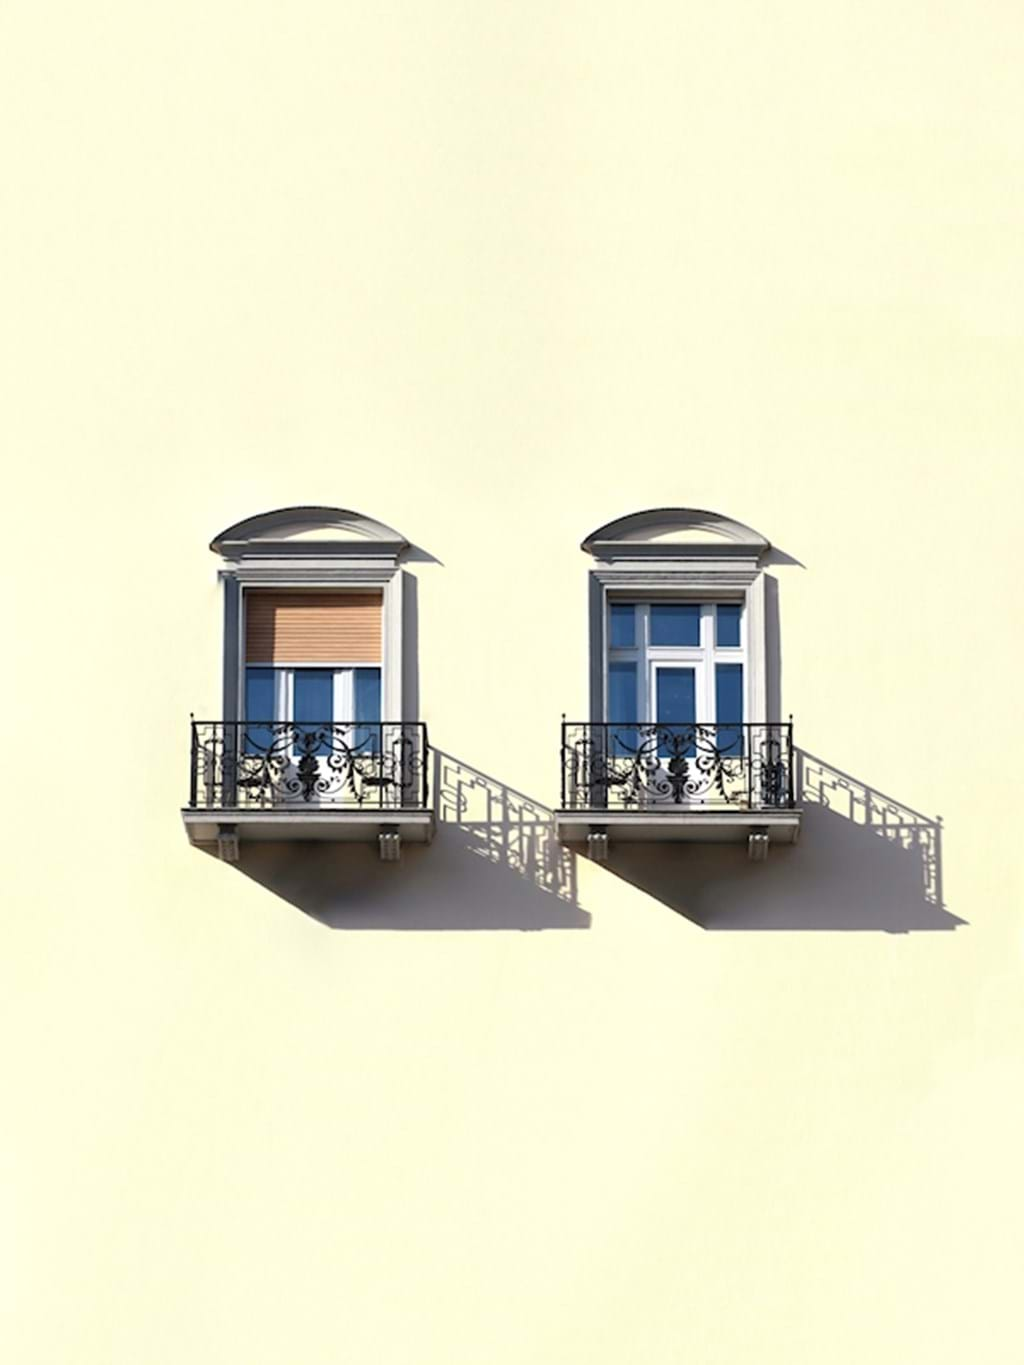 Poster: Neighbours II - Architecture & Design